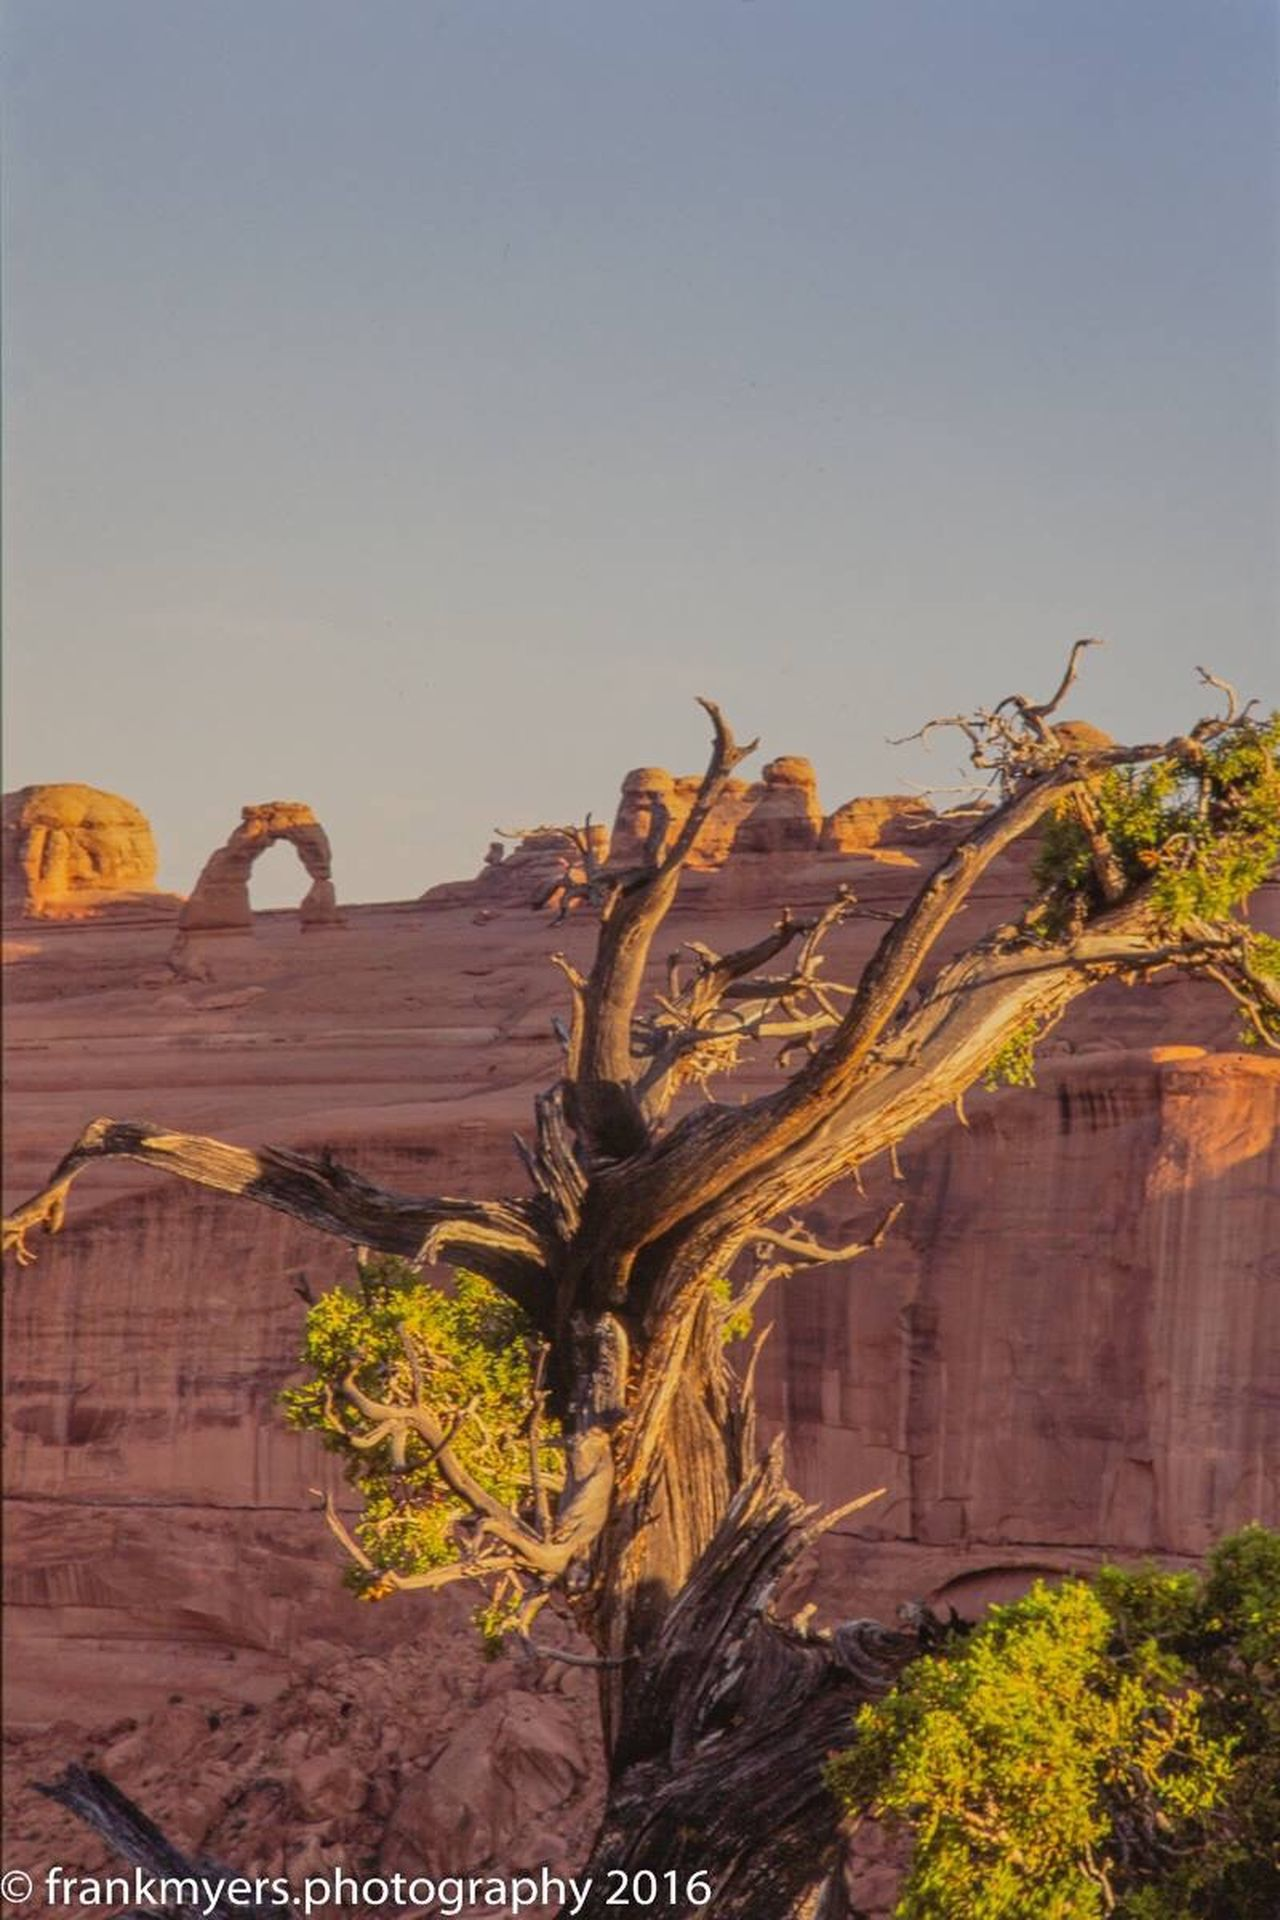 Bristlecone Pine and Delicate Arch Nature Rock - Object No People Physical Geography Outdoors Beauty In Nature Geology Tree Clear Sky Scenics Tranquil Scene Low Angle View Arid Climate Day Canyon